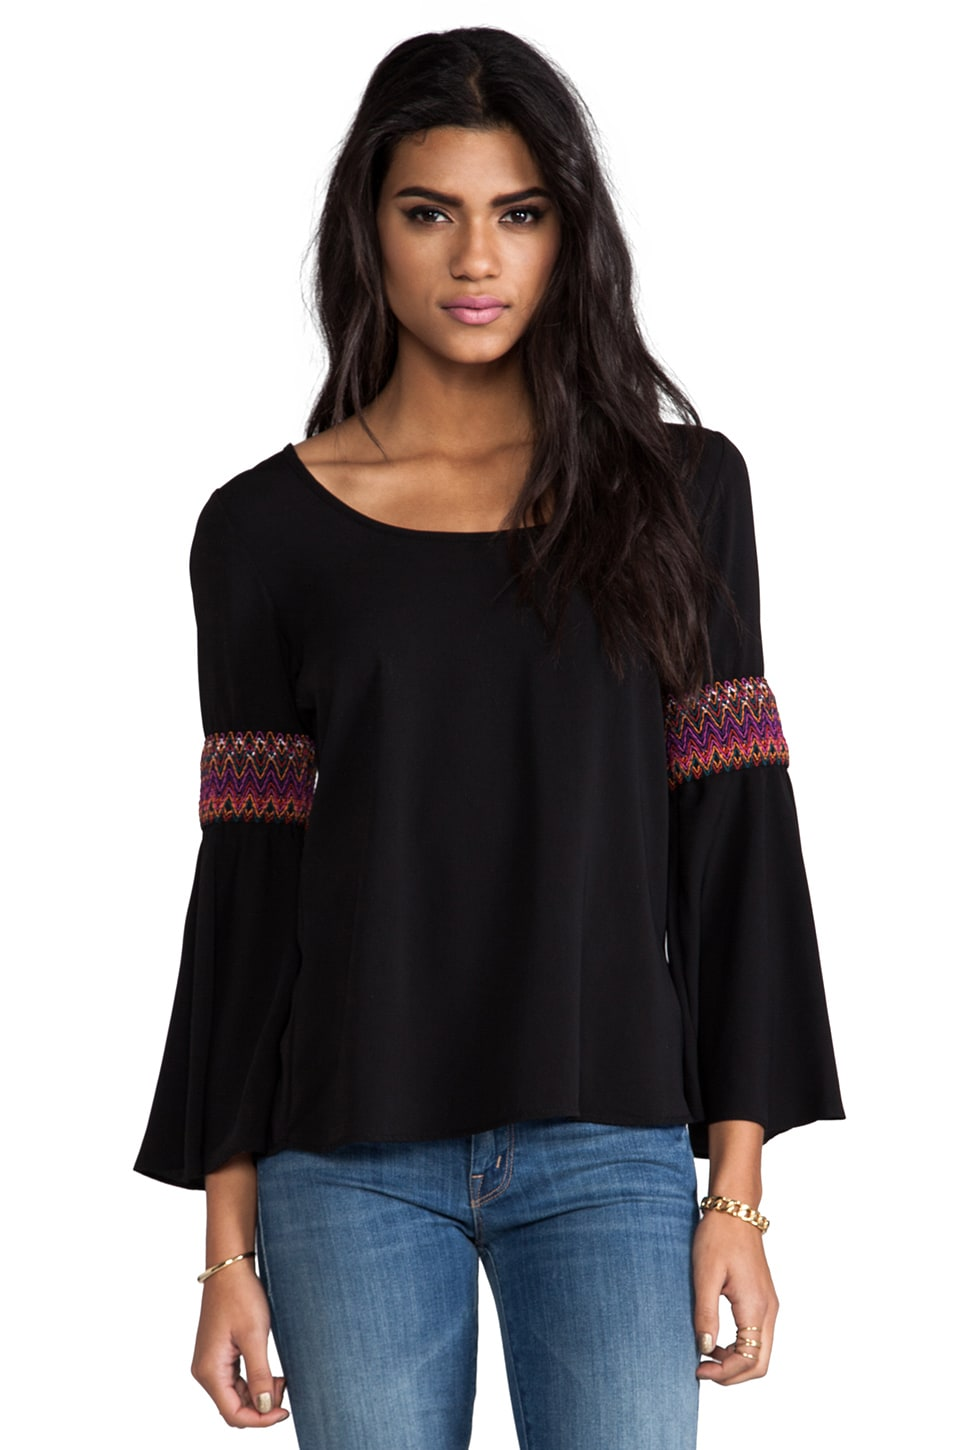 VAVA by Joy Han Betsy Bell Sleeve Top in Black